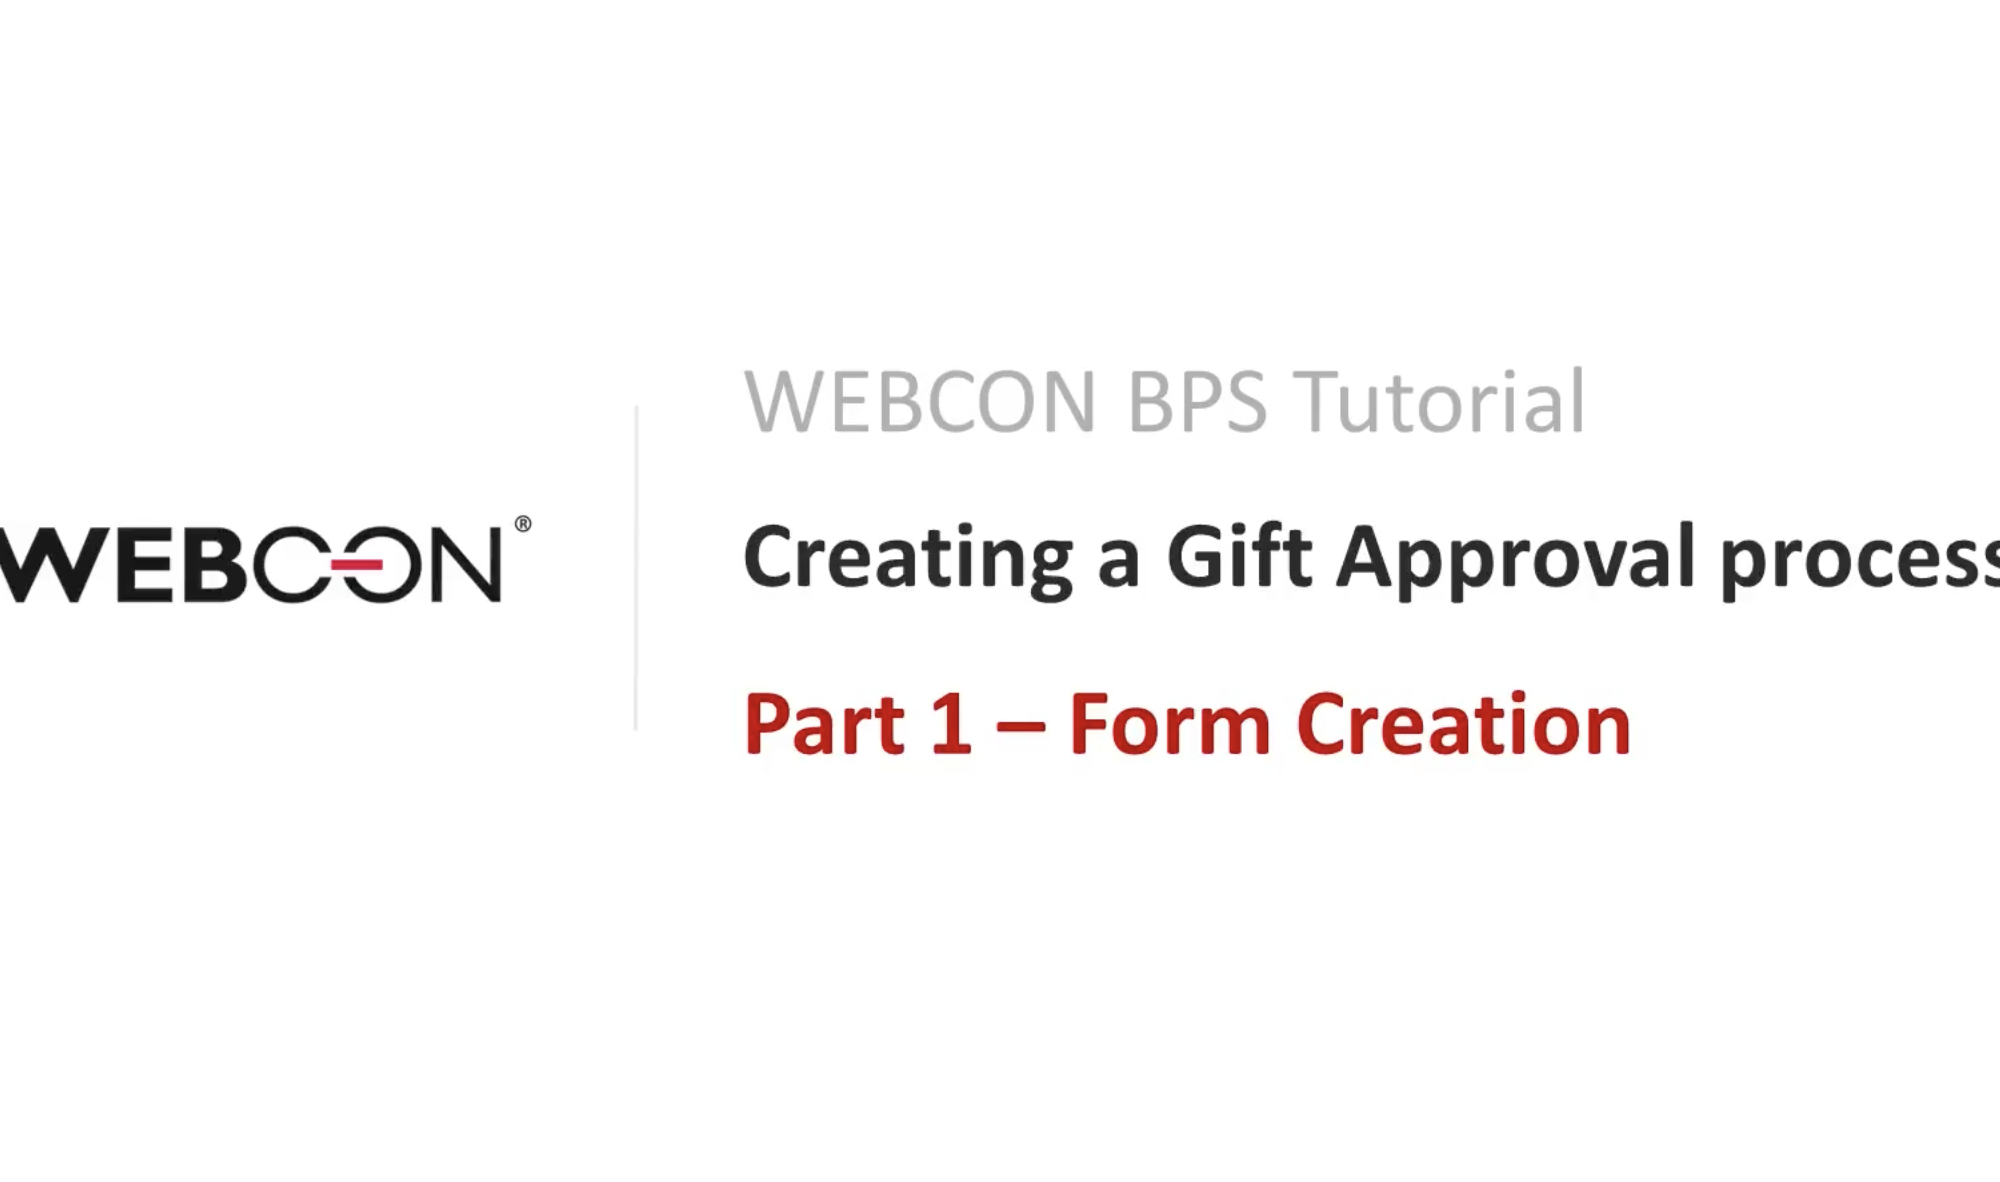 WEBCON BPS TUTORIAL Part 1